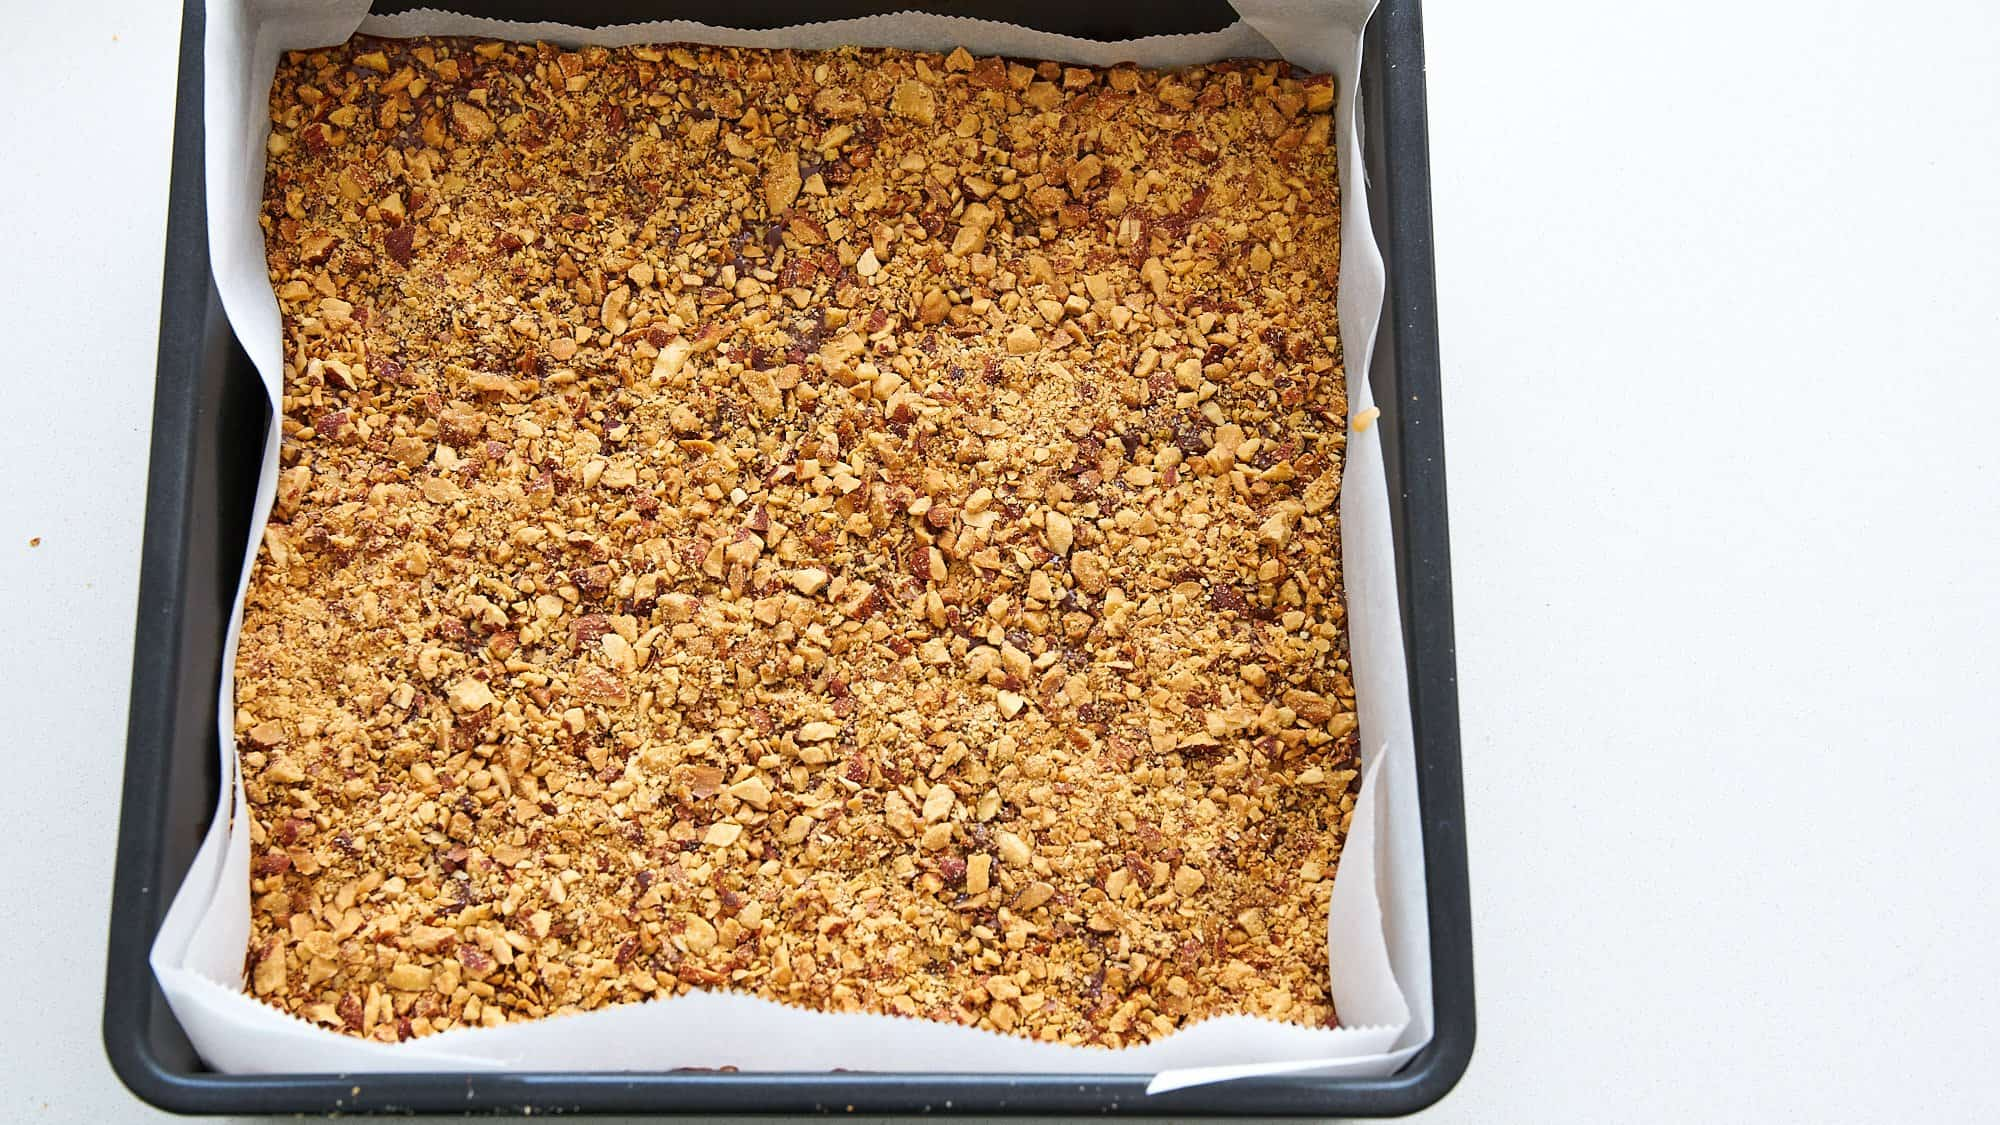 Top your butter toffee with the rest of the roasted almonds.